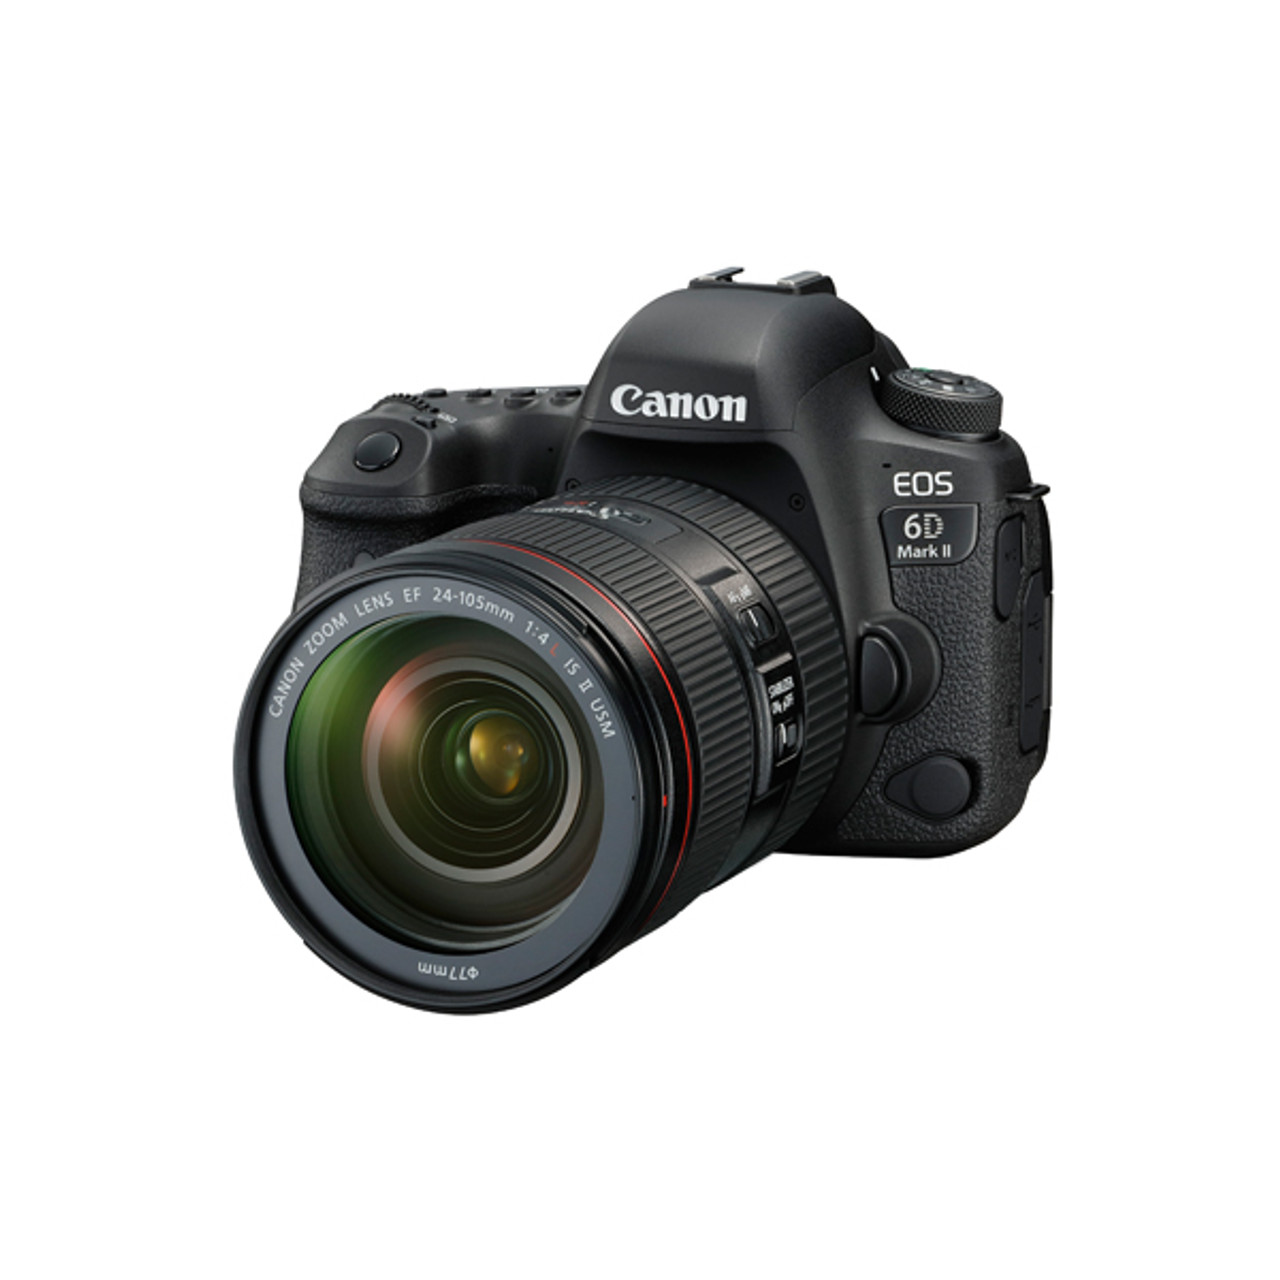 Canon EOS 6D Mark II 24-105mm L IS II USM Kit